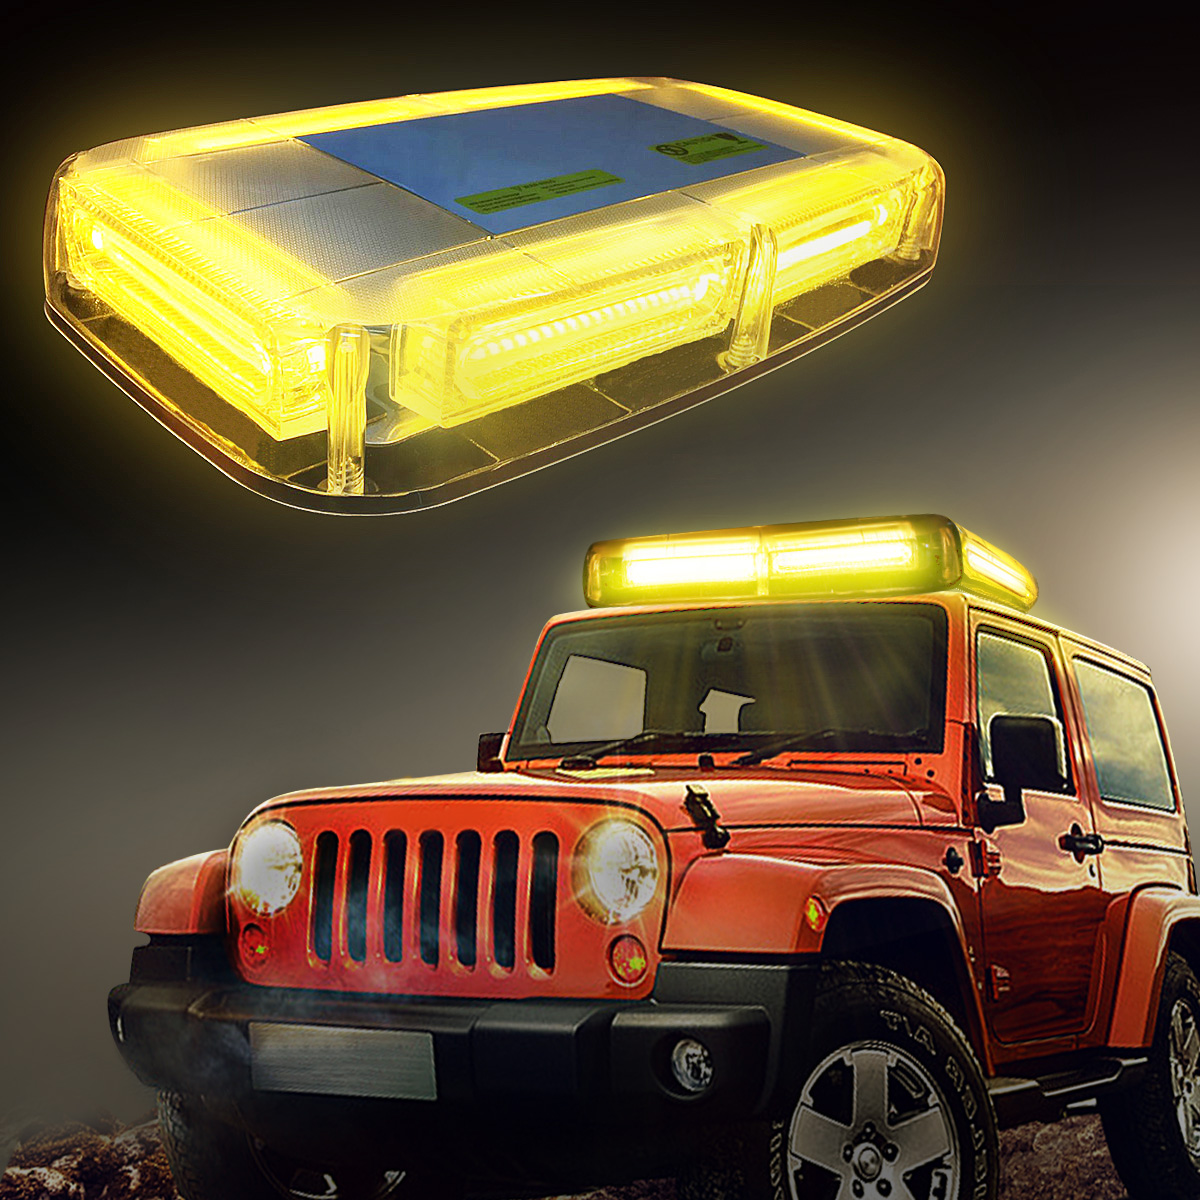 AMBOTHER 10x65x22 Inch Car Truck Amber Yellow 6-COB LED 18W Law Enforcement Emergency Hazard Warning LED Mini Bar Strobe Light 7 Modes with Magnetic Base